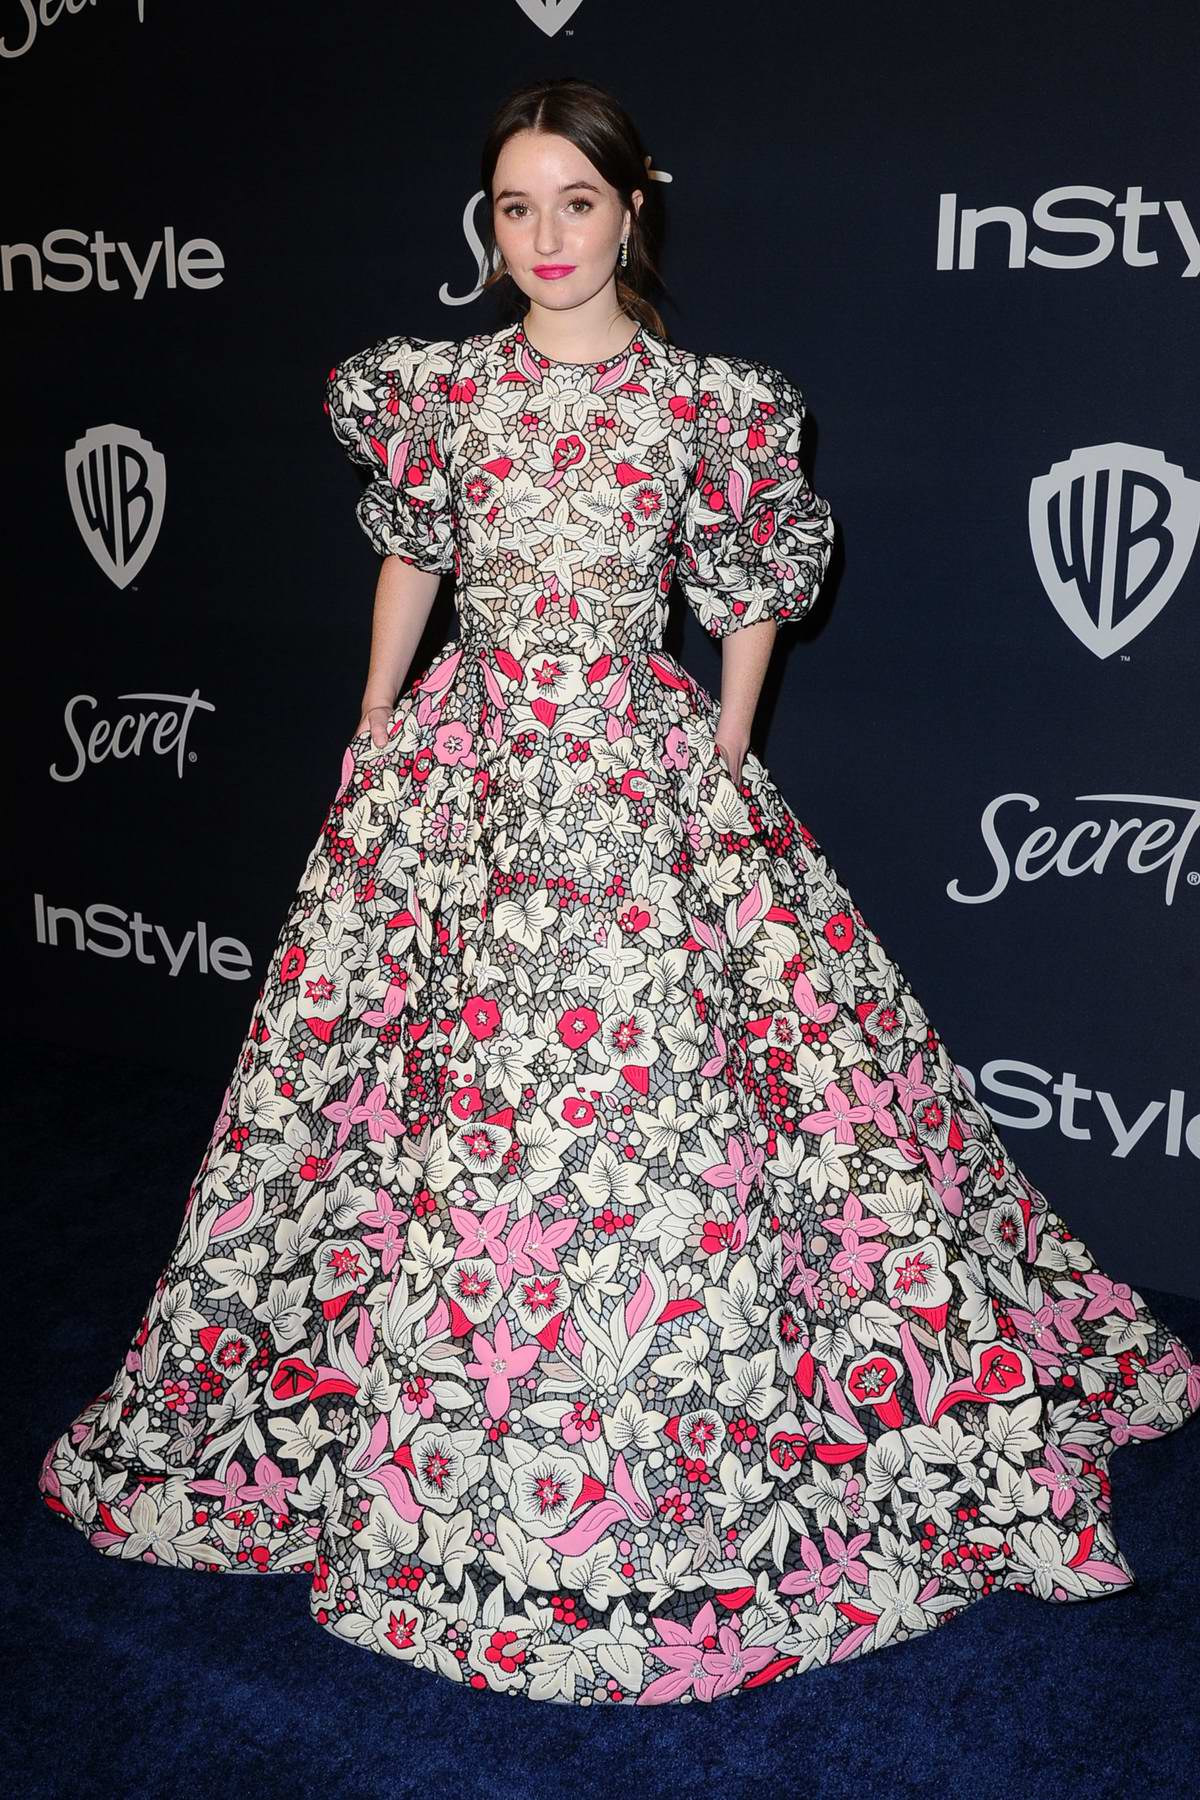 Kaitlyn Dever attends the 21st annual Warner Bros and InStyle Golden Globe After-Party in Beverly Hills, California